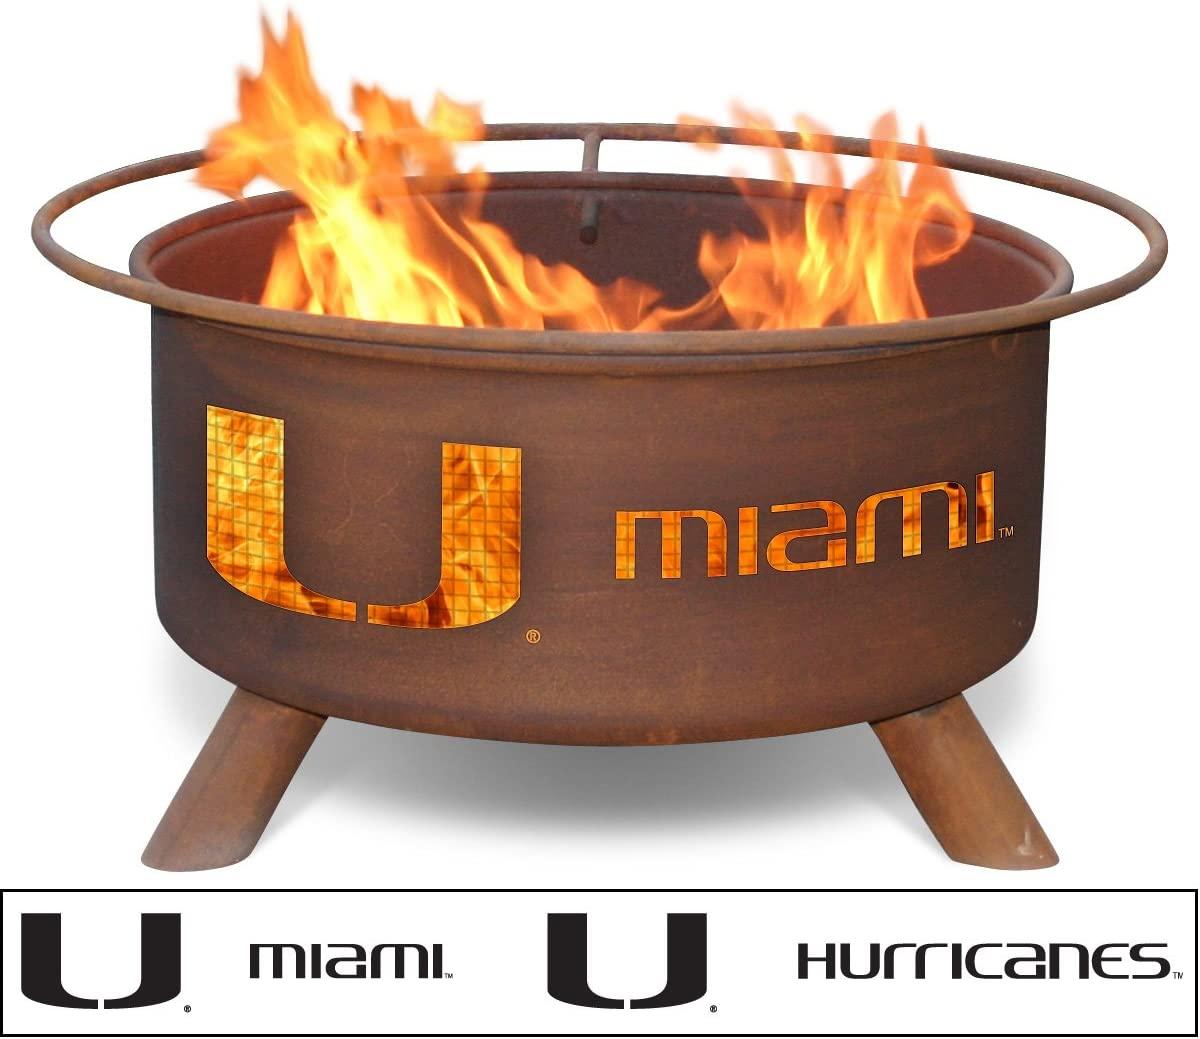 Patina Products F225, 30 Inch University of Miami Fire Pit